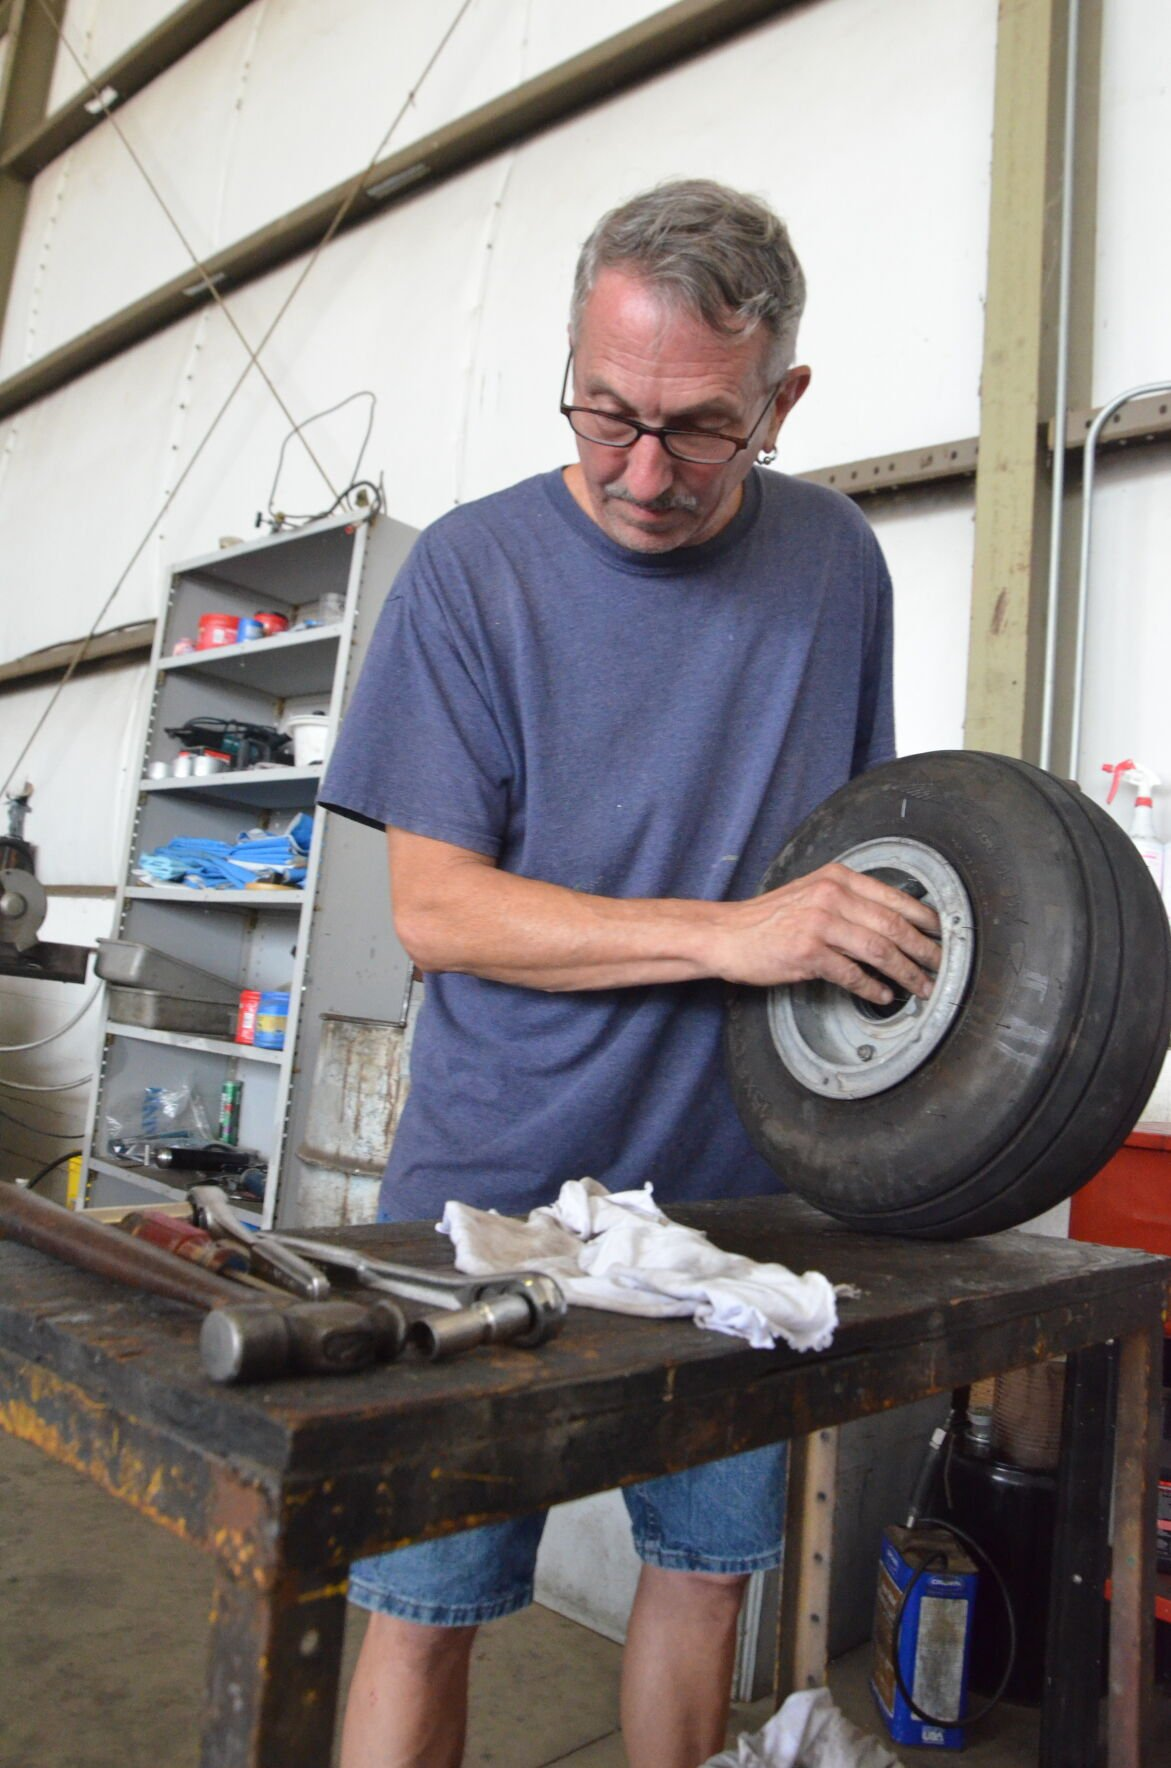 John Coulter works on an aircraft's wheel inside of a hangar at Statesville Regional Airport on Friday.